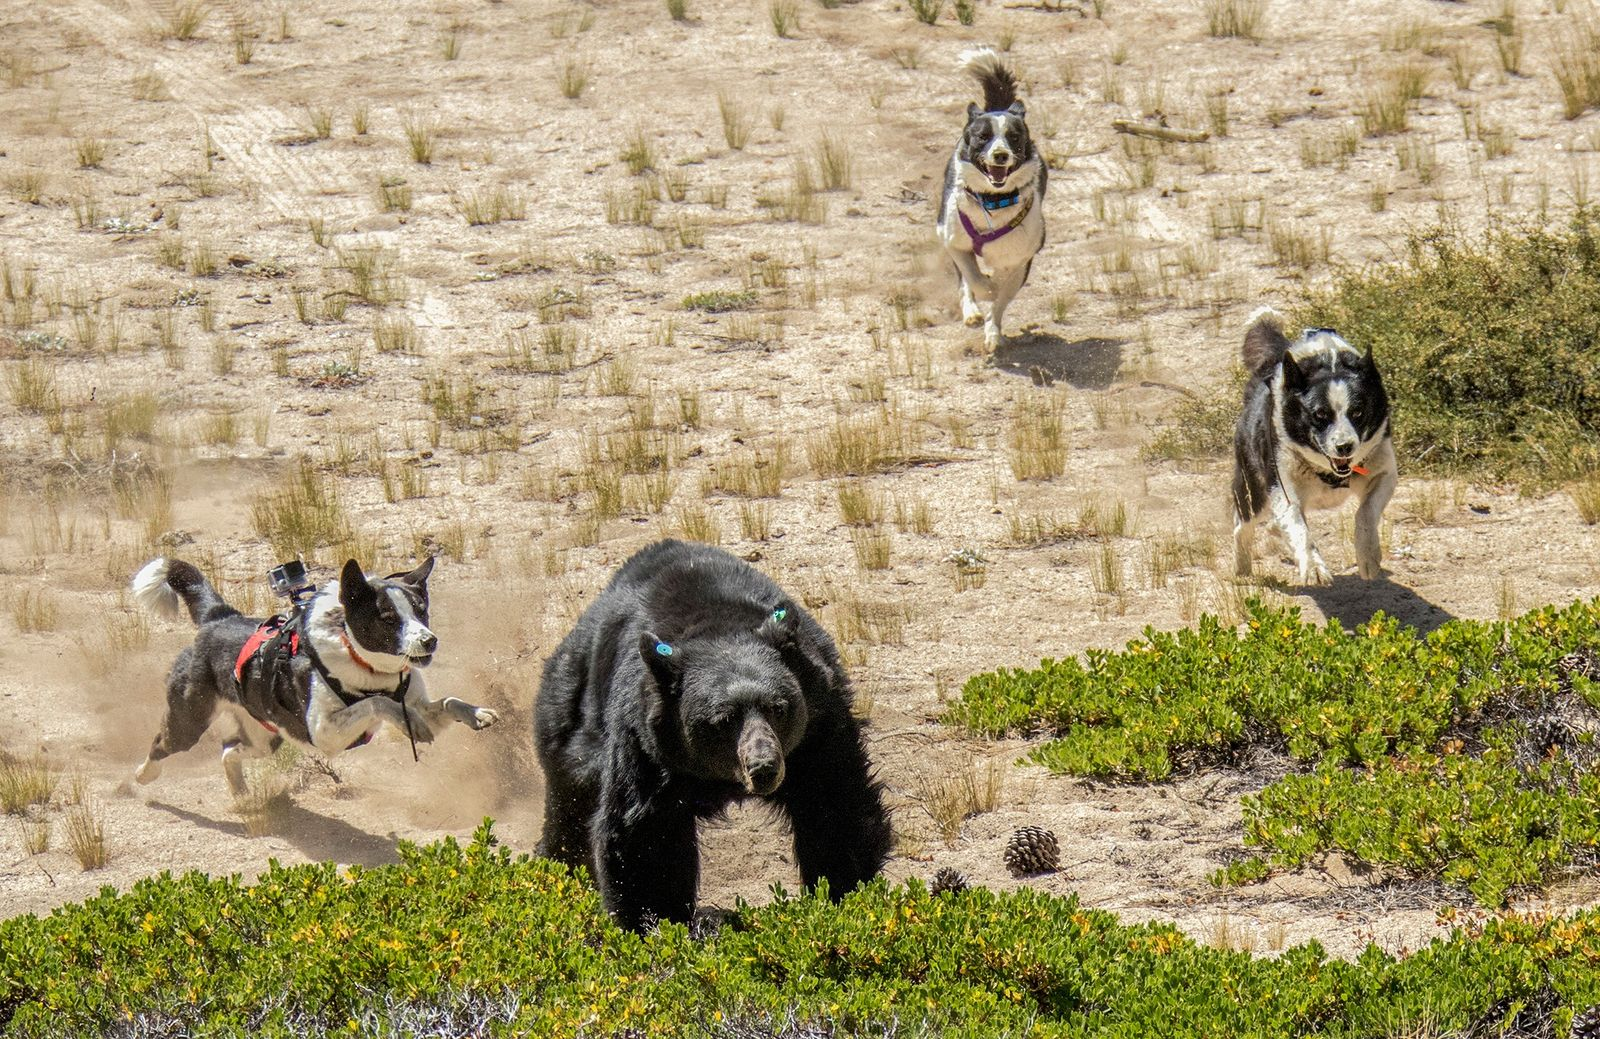 These dogs scare bears away—to protect them